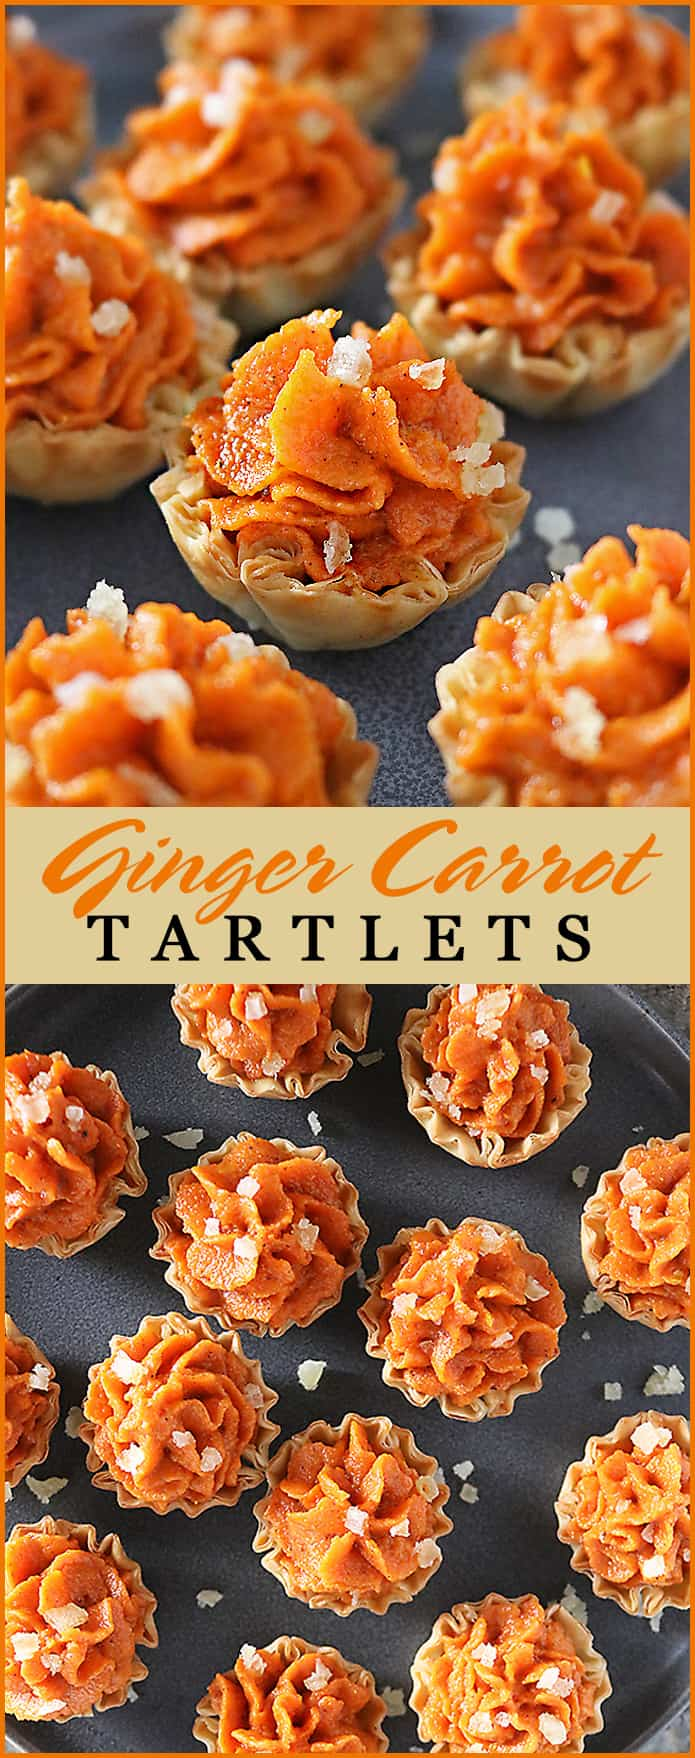 Easy Delicious Ginger Carrot Tartlets Image